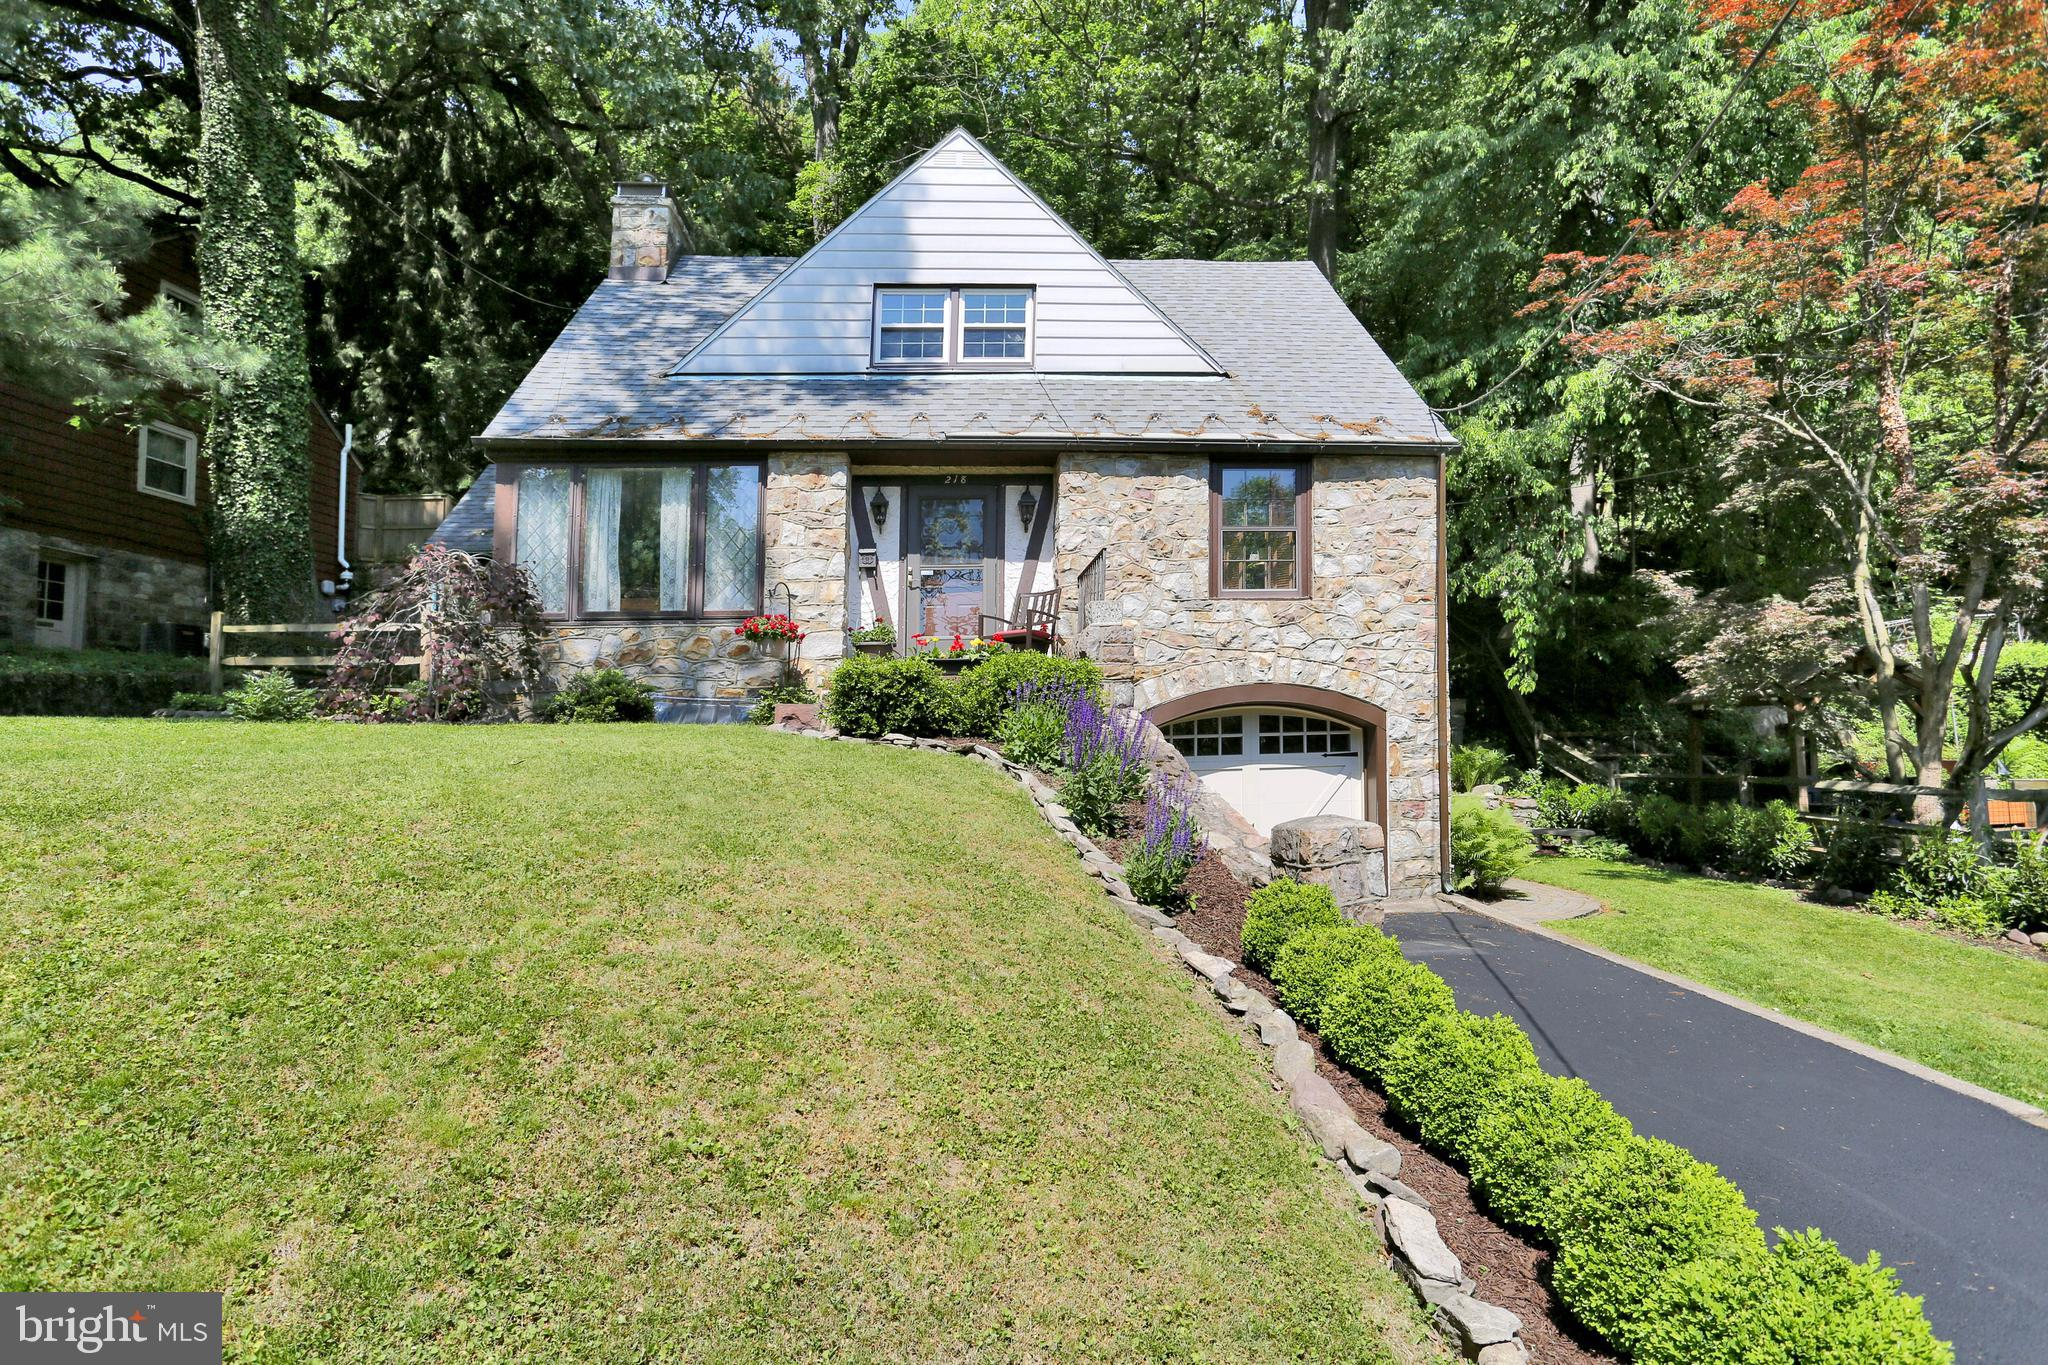 This Mt Penn Single boasts tons of charm inside and out!  Stone Tudor style  exterior has beautiful curb appeal along with mature landscaping!  Inviting living room space with stone fireplace the focus point of the room.  French style doors lead to side slated flagstone patio.  2nd floor features 2 bedrooms and possible 3rd (which is currently a huge walk in closet)! Remodeled full bath upstairs and a balcony with a view of the woods!  Possible 4th bedroom on 1st floor with another full bath!  Lovely dining room space leads to galley kitchen.  Full basement with lots of storage space, laundry, and 1 car garage.  All newer mechanicals including central air!  Rear of the home is all wooded with an original stone fireplace to sit and relax with friends!  There is also some grass turf that completes the backyard, easy to maintain!  Hurry up and take a look!